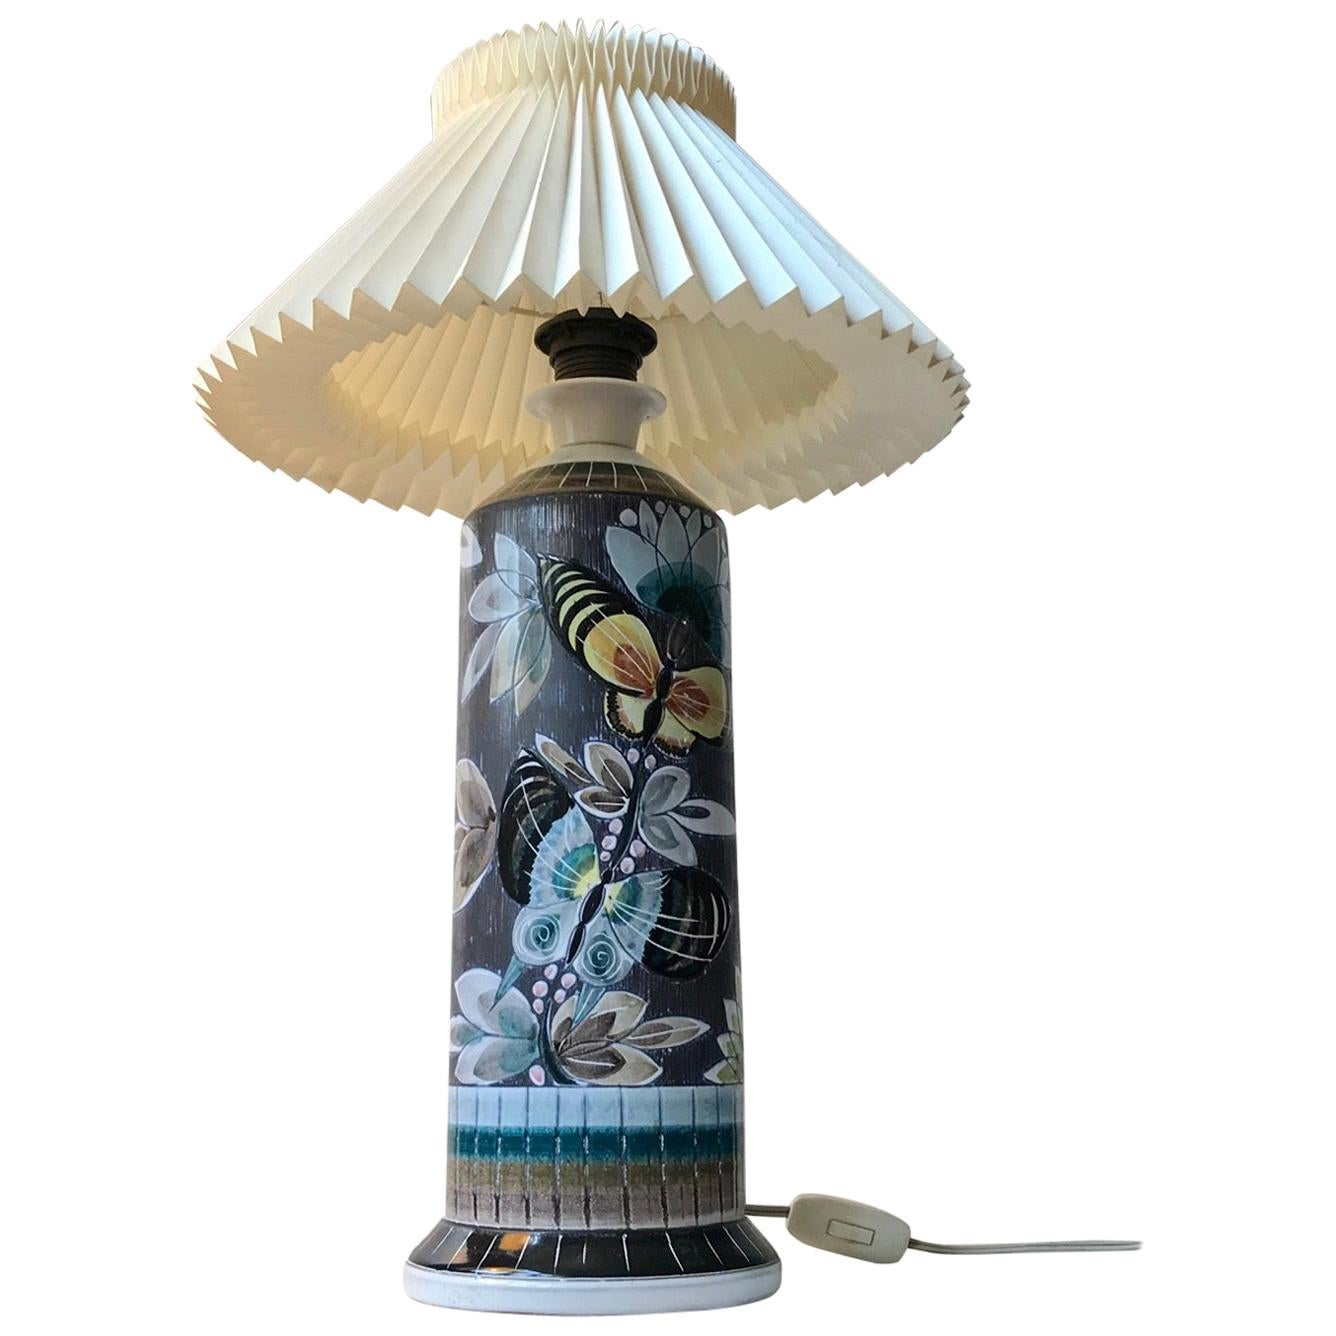 Sgraffito Table Lamp with Butterflies by Marian Zawadsky for Alms Keramik, 1960s